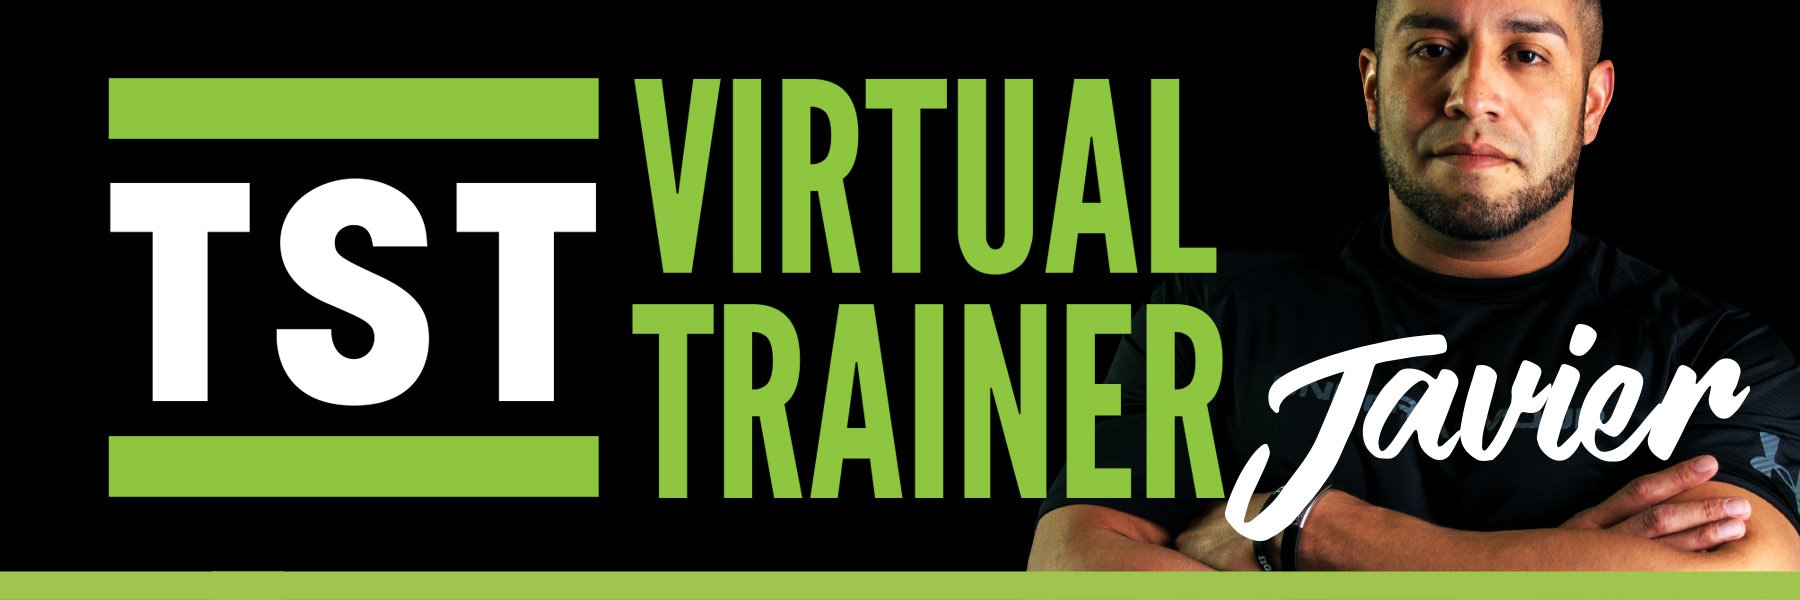 TST20 Virtual Trainer with Javier